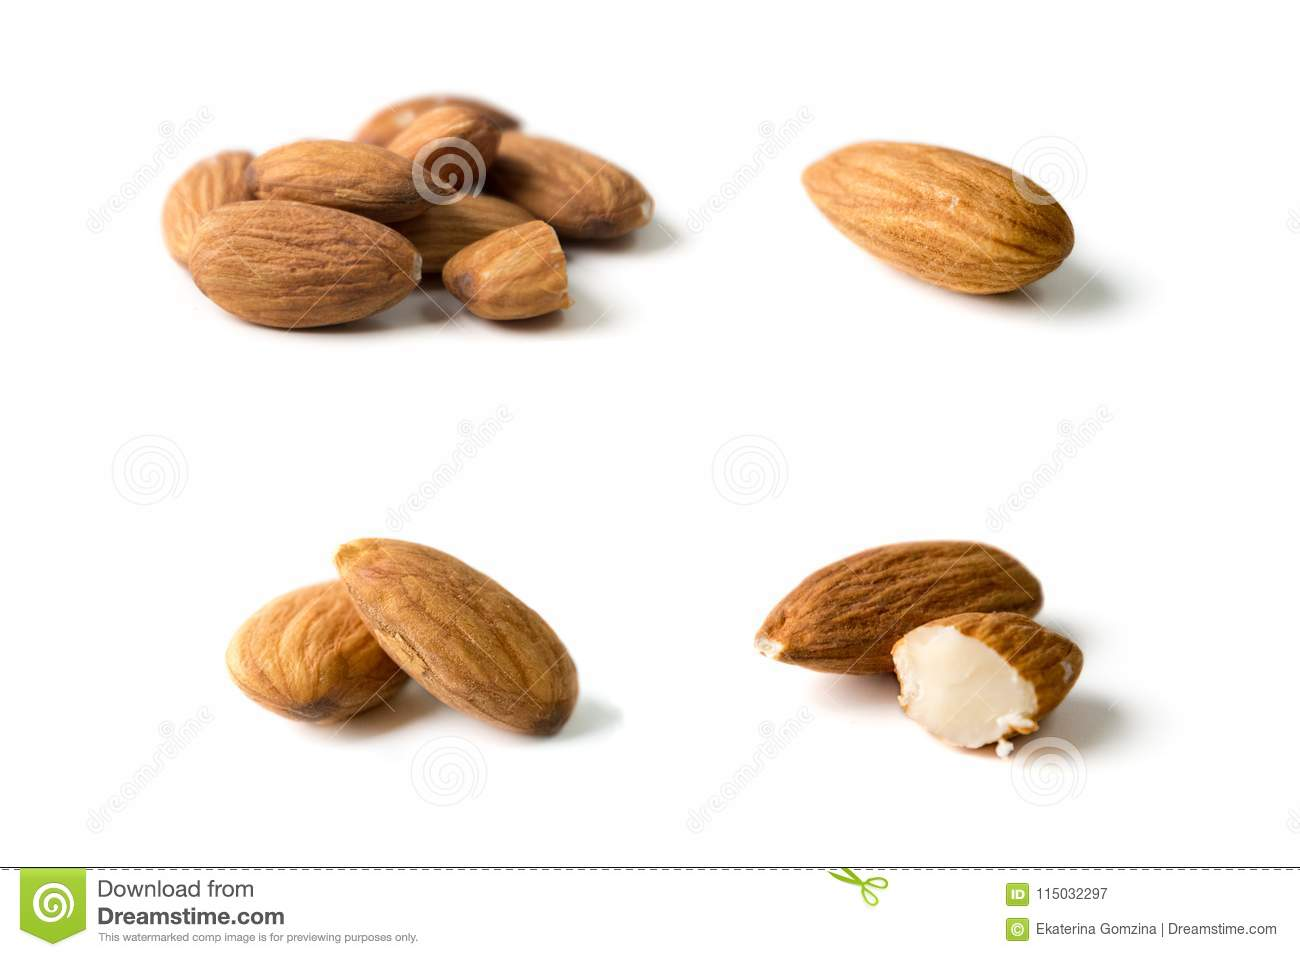 Nuts, almond, tasty and healthy food with lots of vitamins. Almond nuts. Almonds in groups and separated